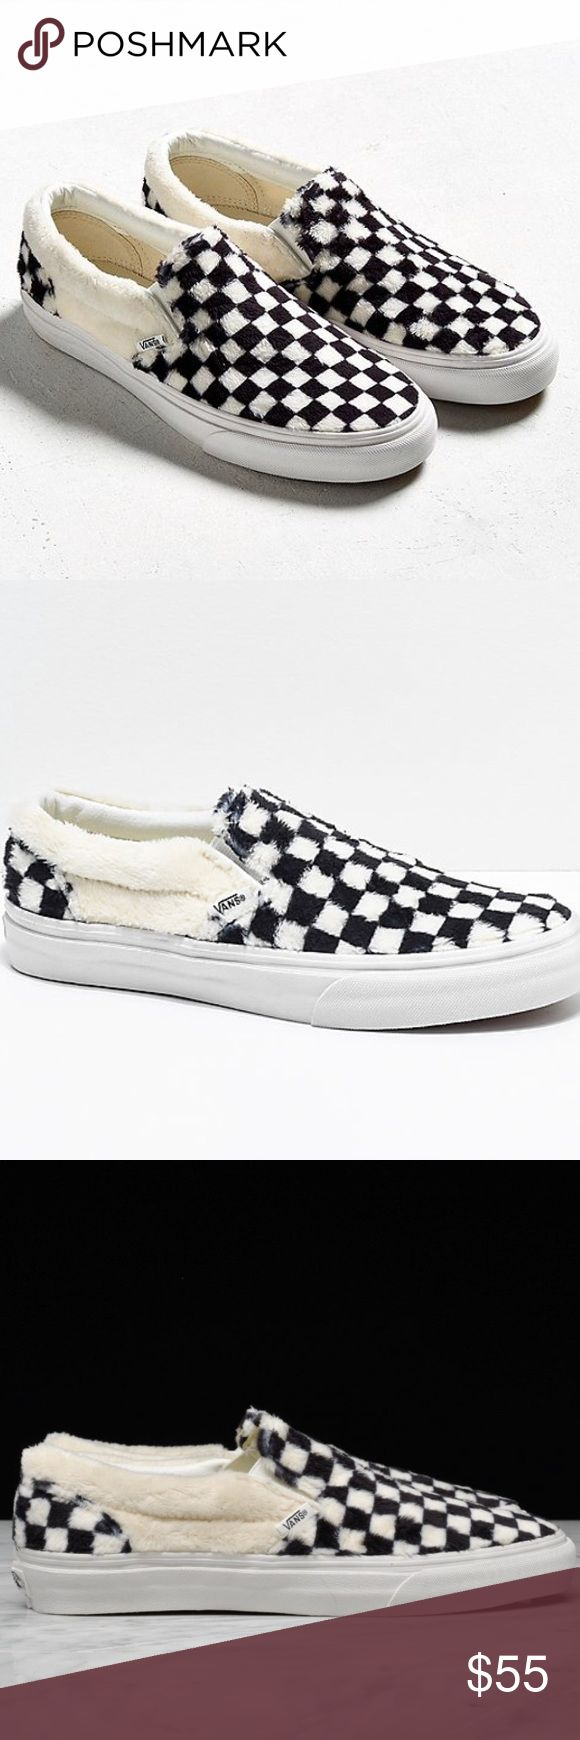 Slip on vans Checkerboard Slip On vans PRICE IS FIRM Fuzzy soft material on the top  Size 9.5 women's Brand new Super cute and unique If you don't like them you can exchange them at urban Outfitters or get a different size if they don't fit just say it was a gift. I purchased them at urban Outfitters but they didn't fit and don't have one near me Vans Shoes Sneakers